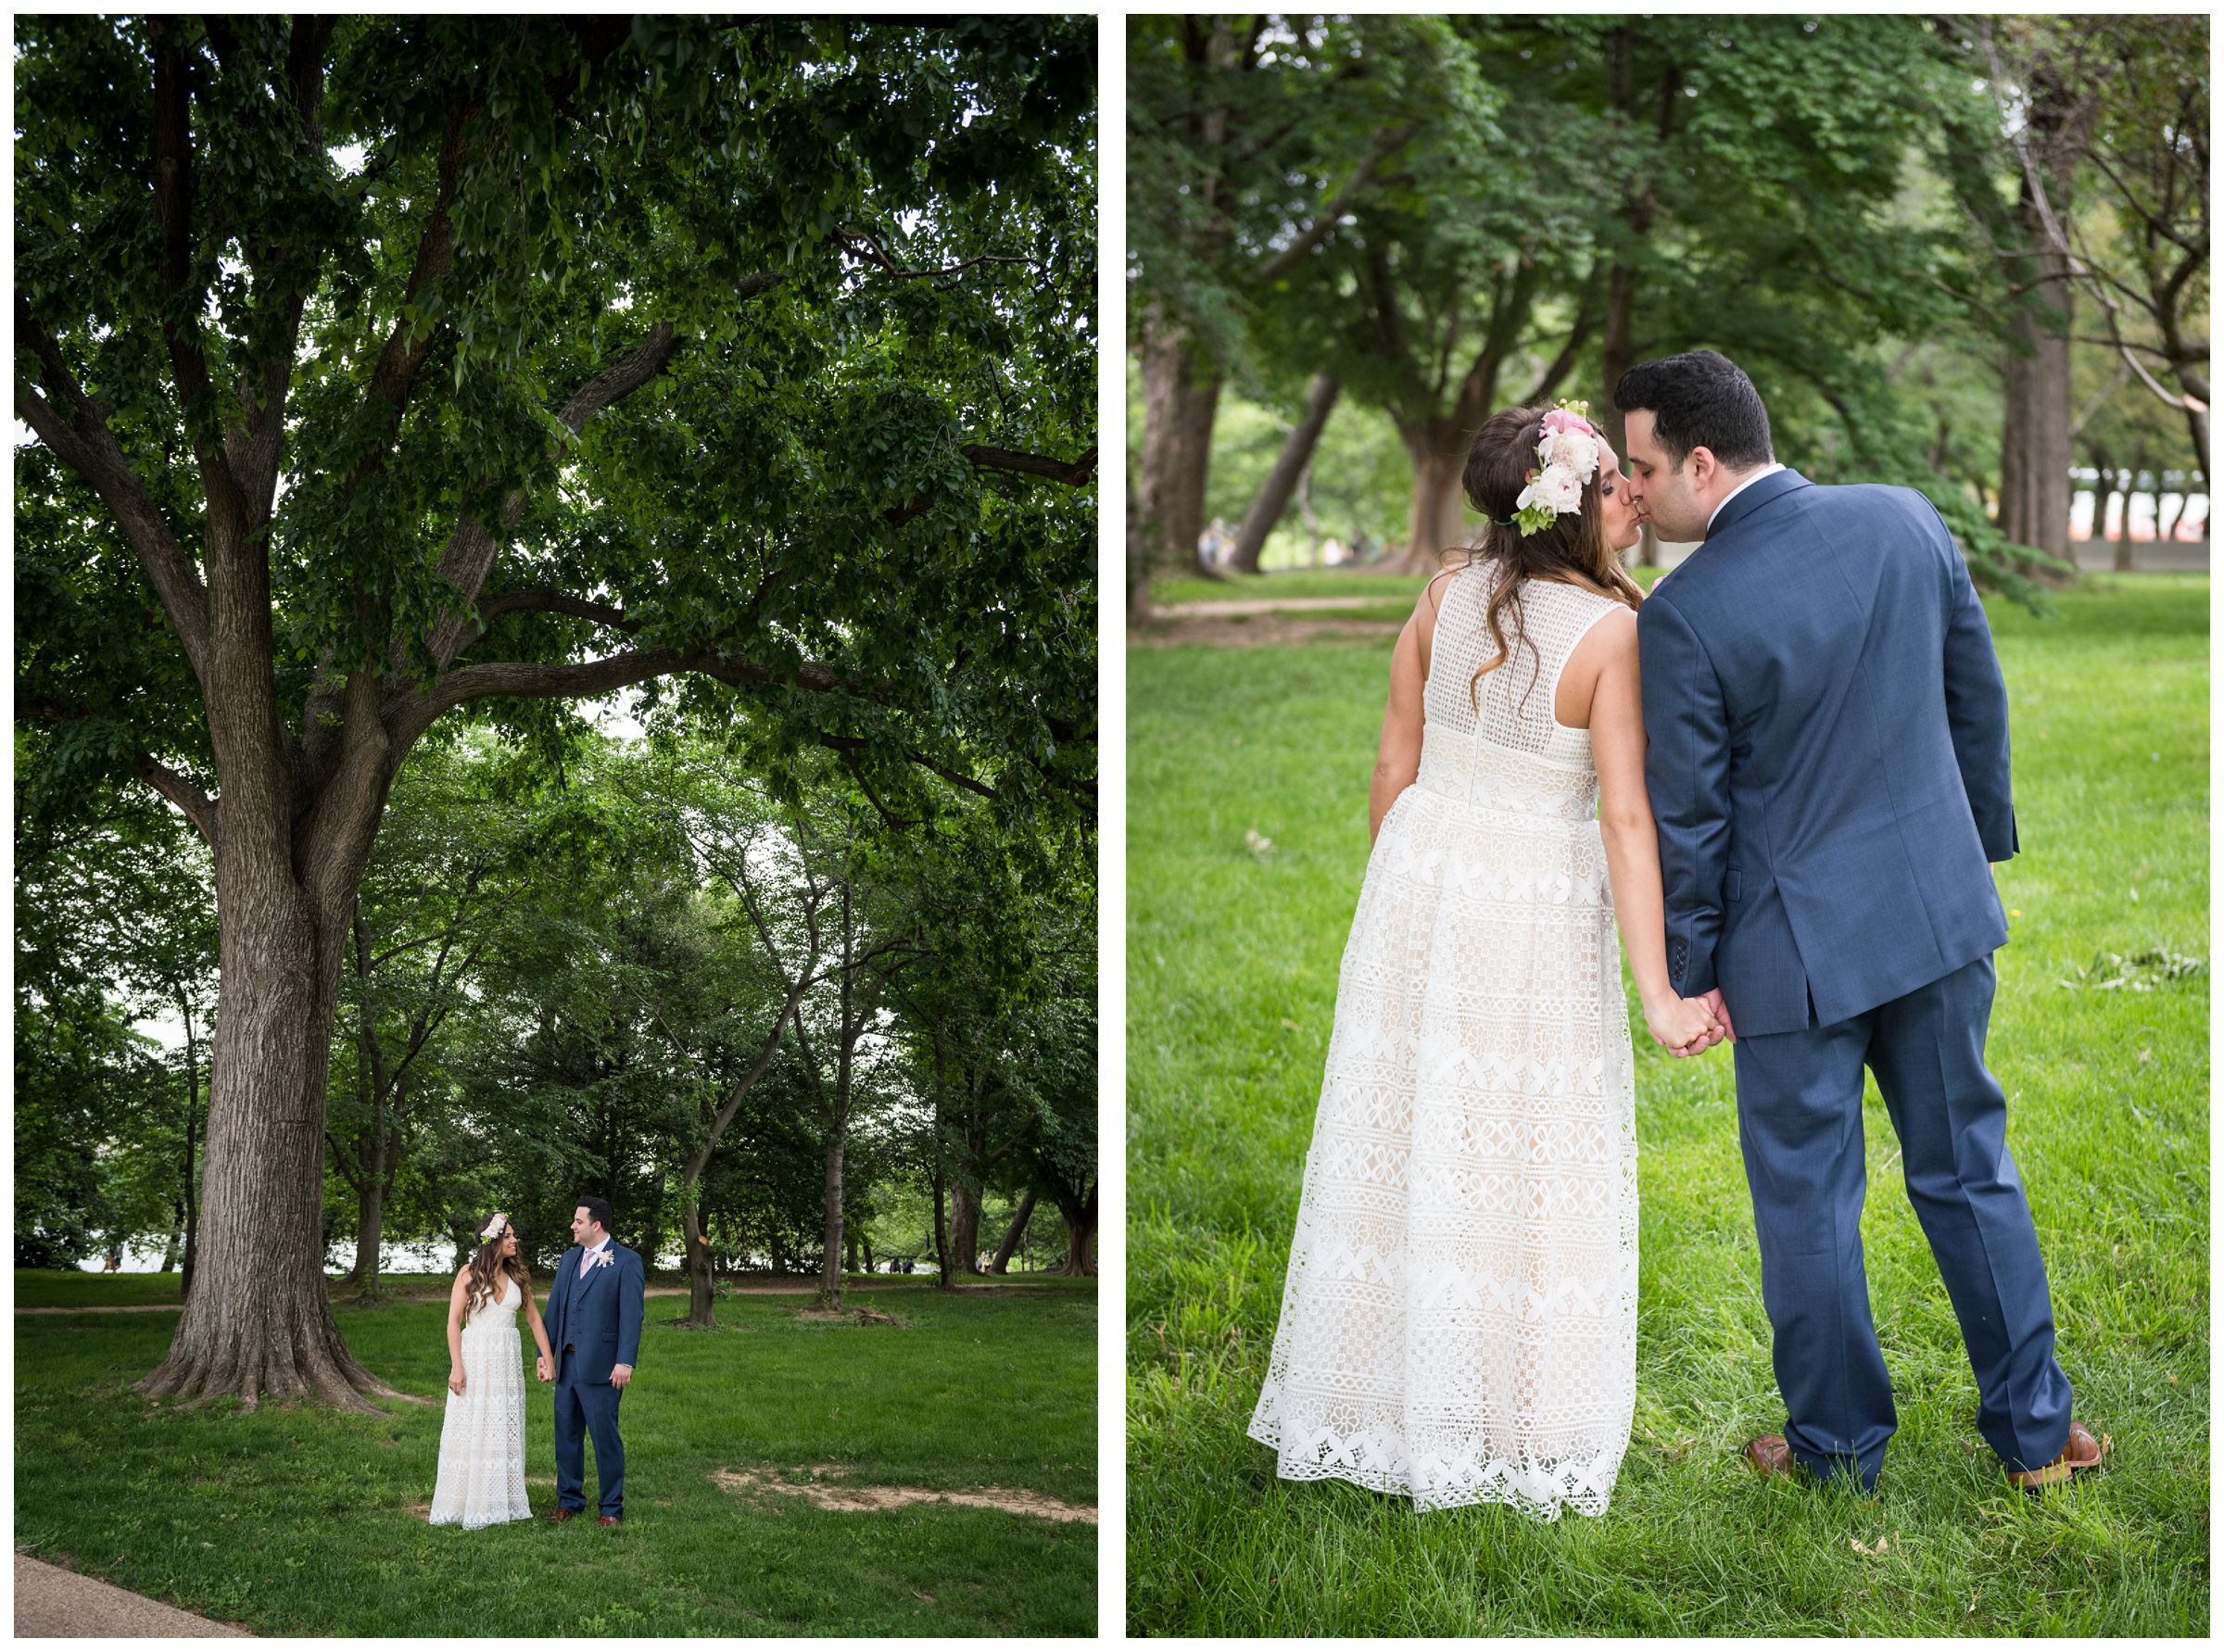 bride and groom portraits on National Mall during wedding day in downtown Washington, D.C.